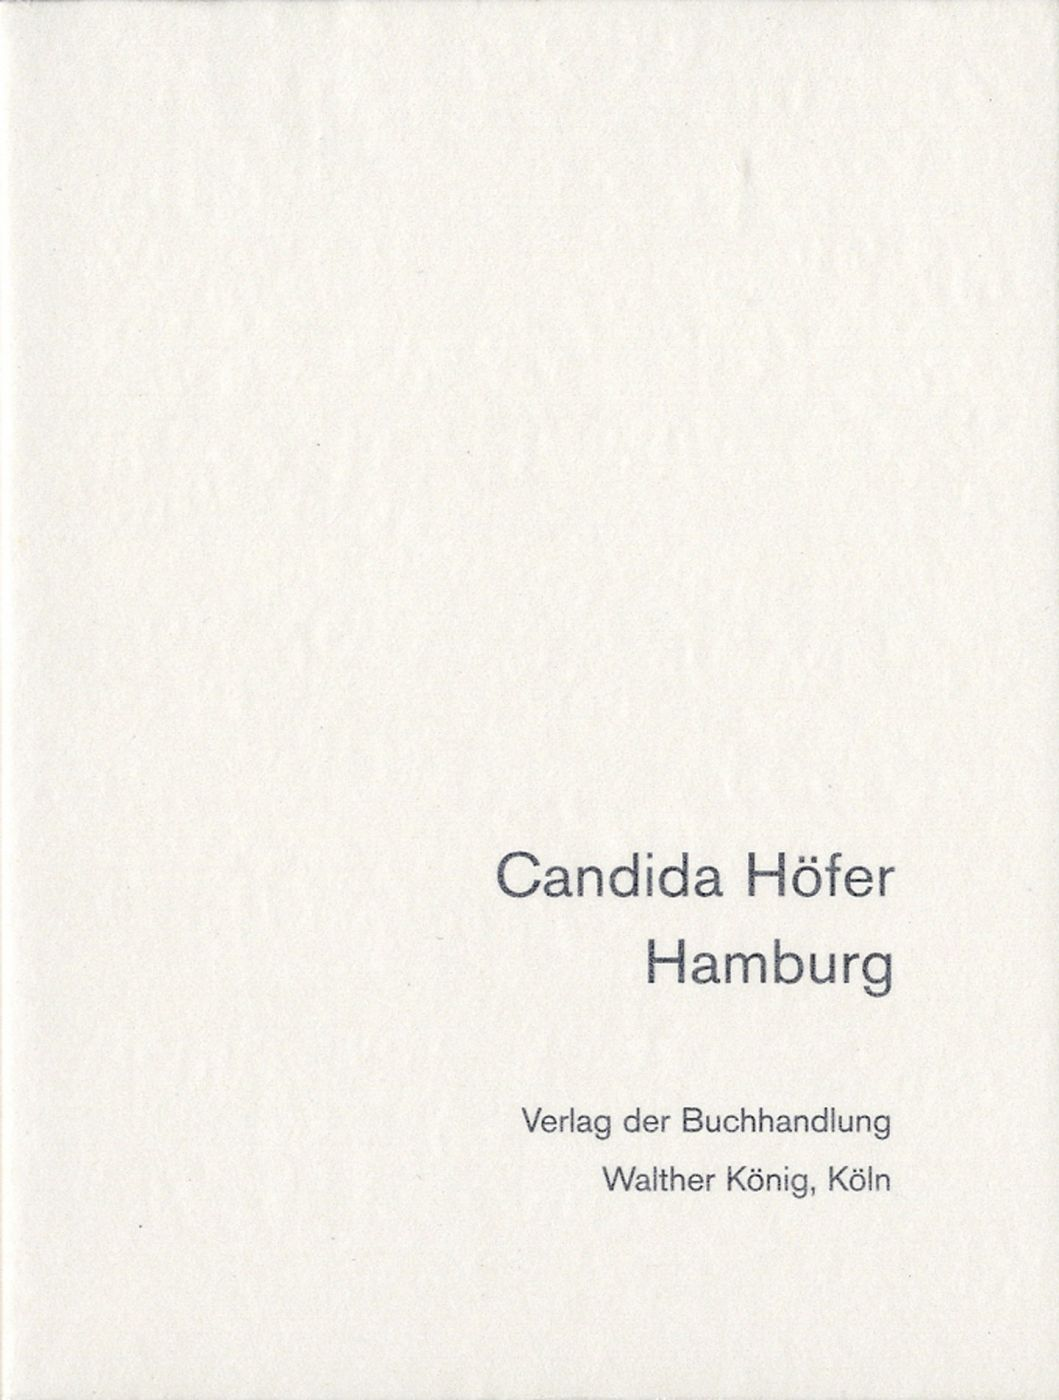 Candida Höfer: Hamburg